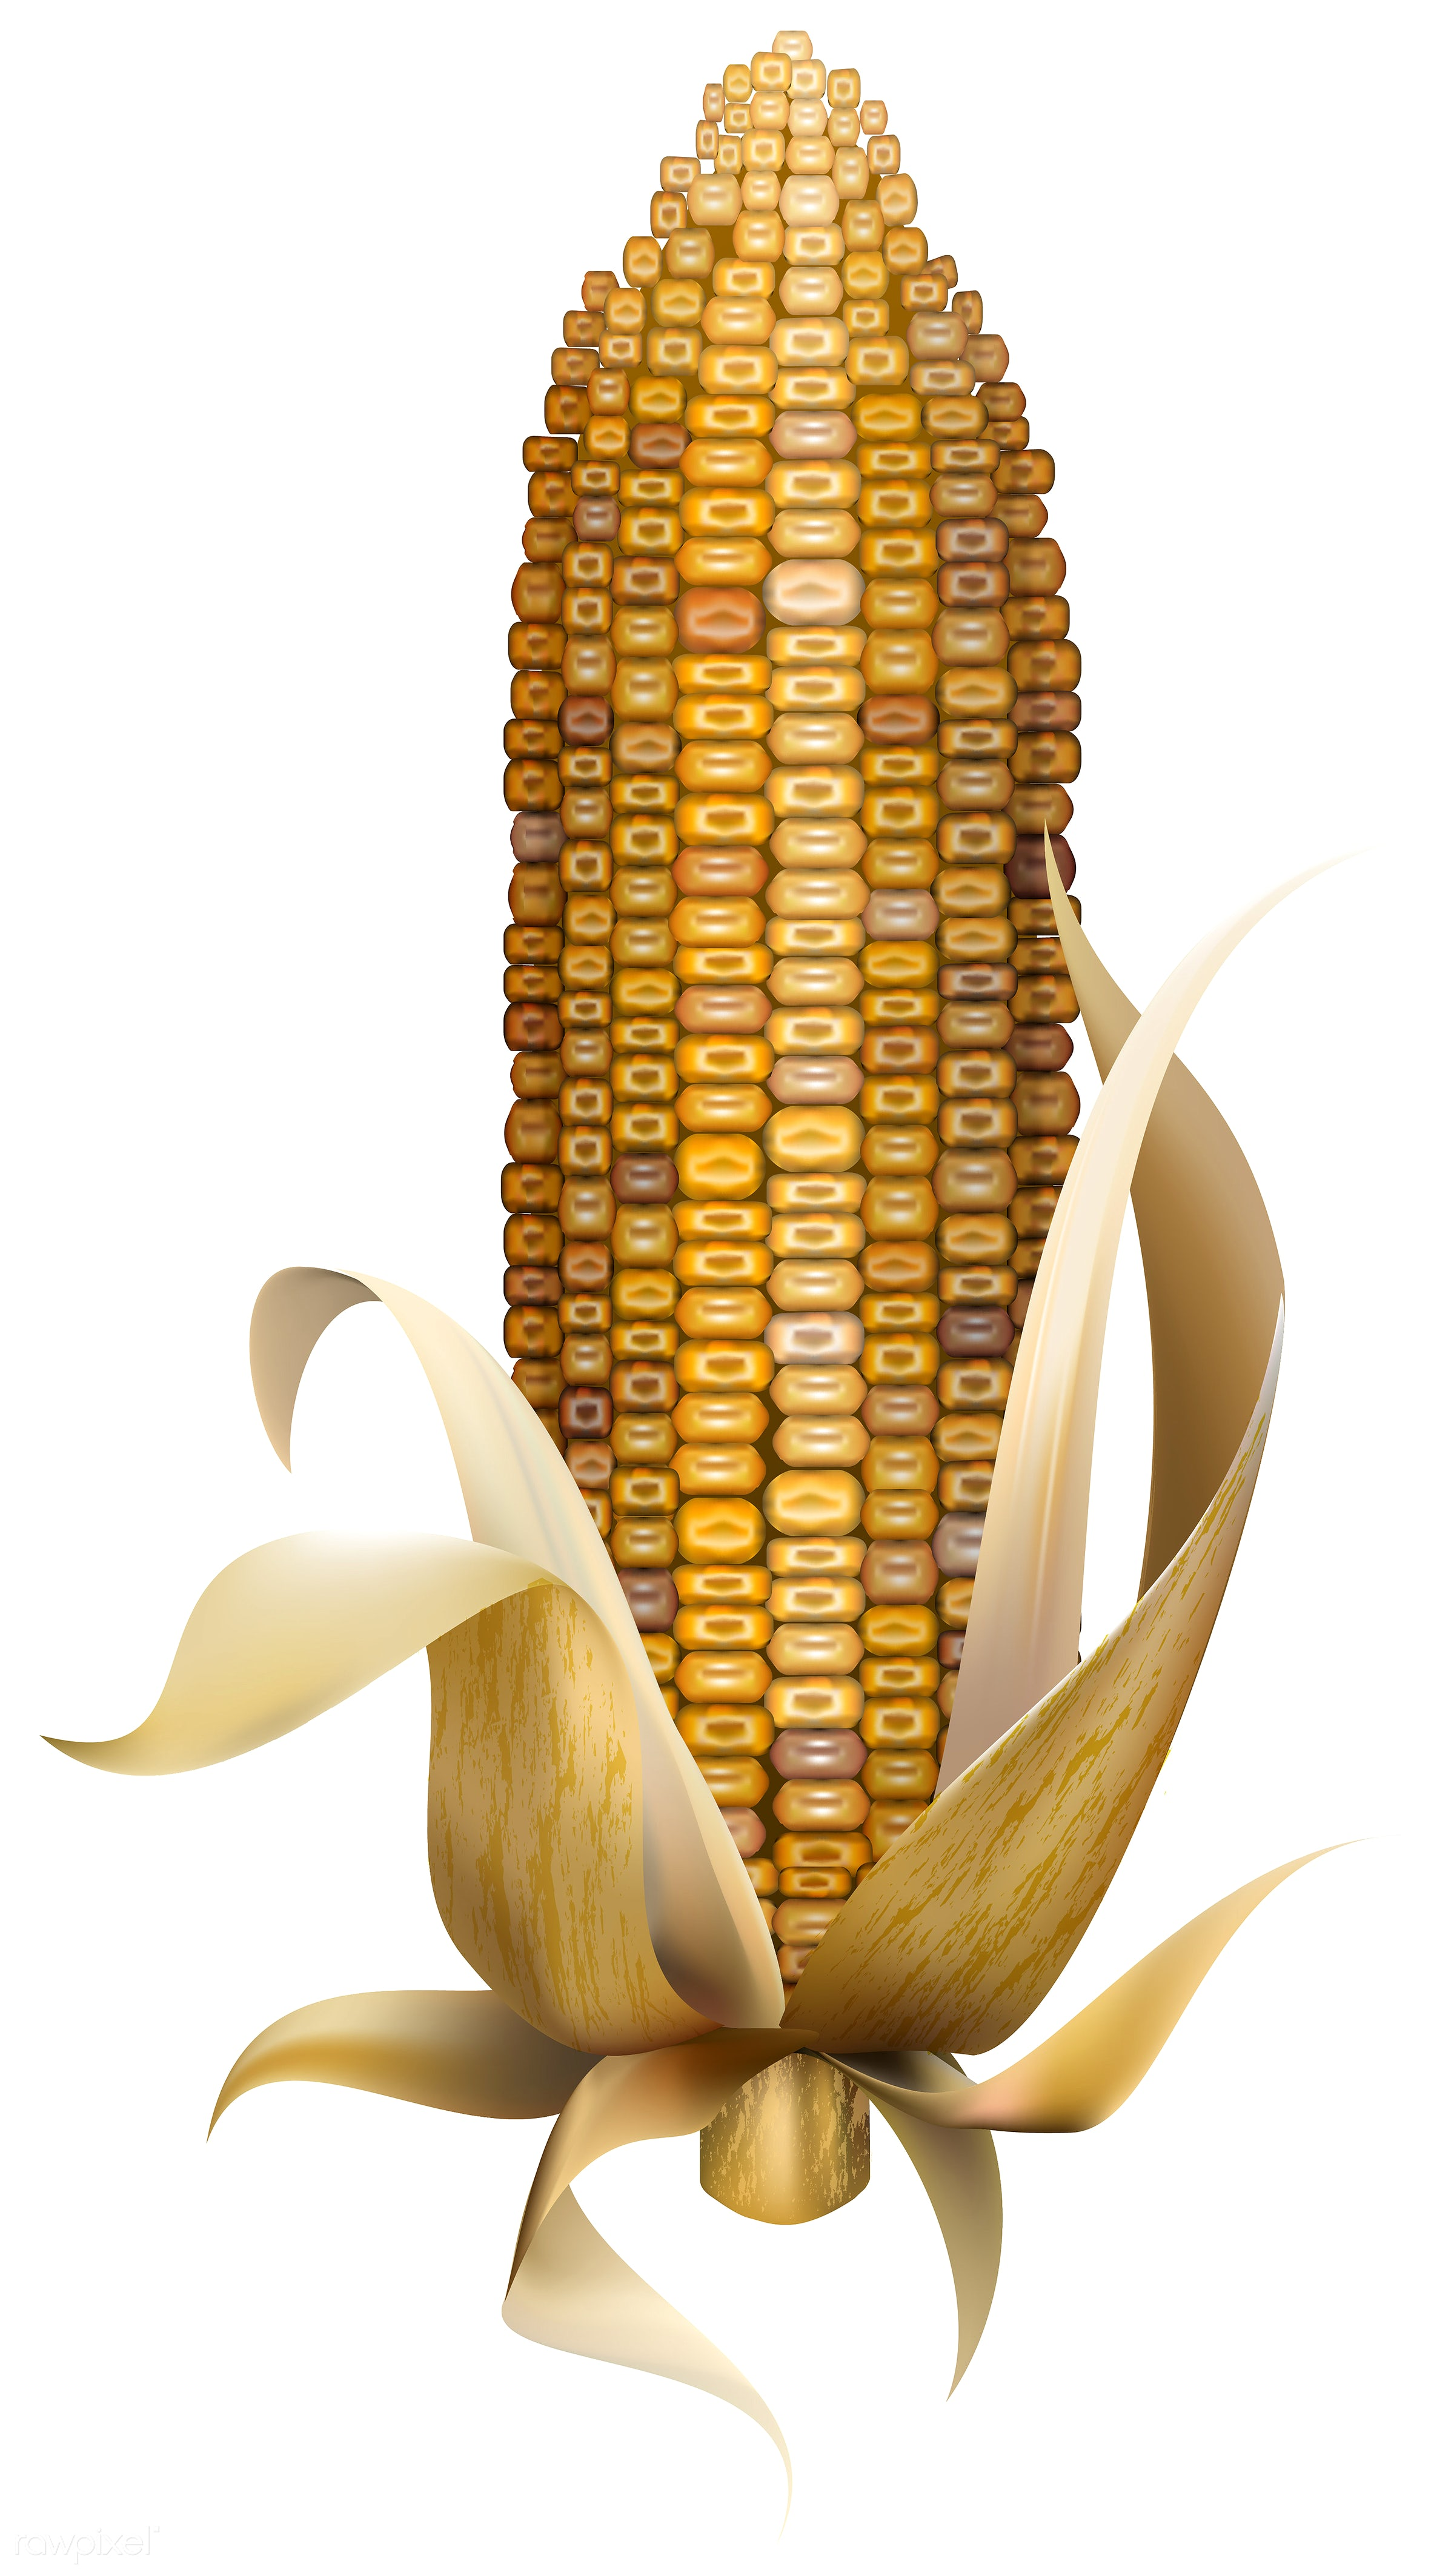 Illustration of corn isolated on white background - corn, autumn, celebration, crops, elements, fall, festival, graphic,...